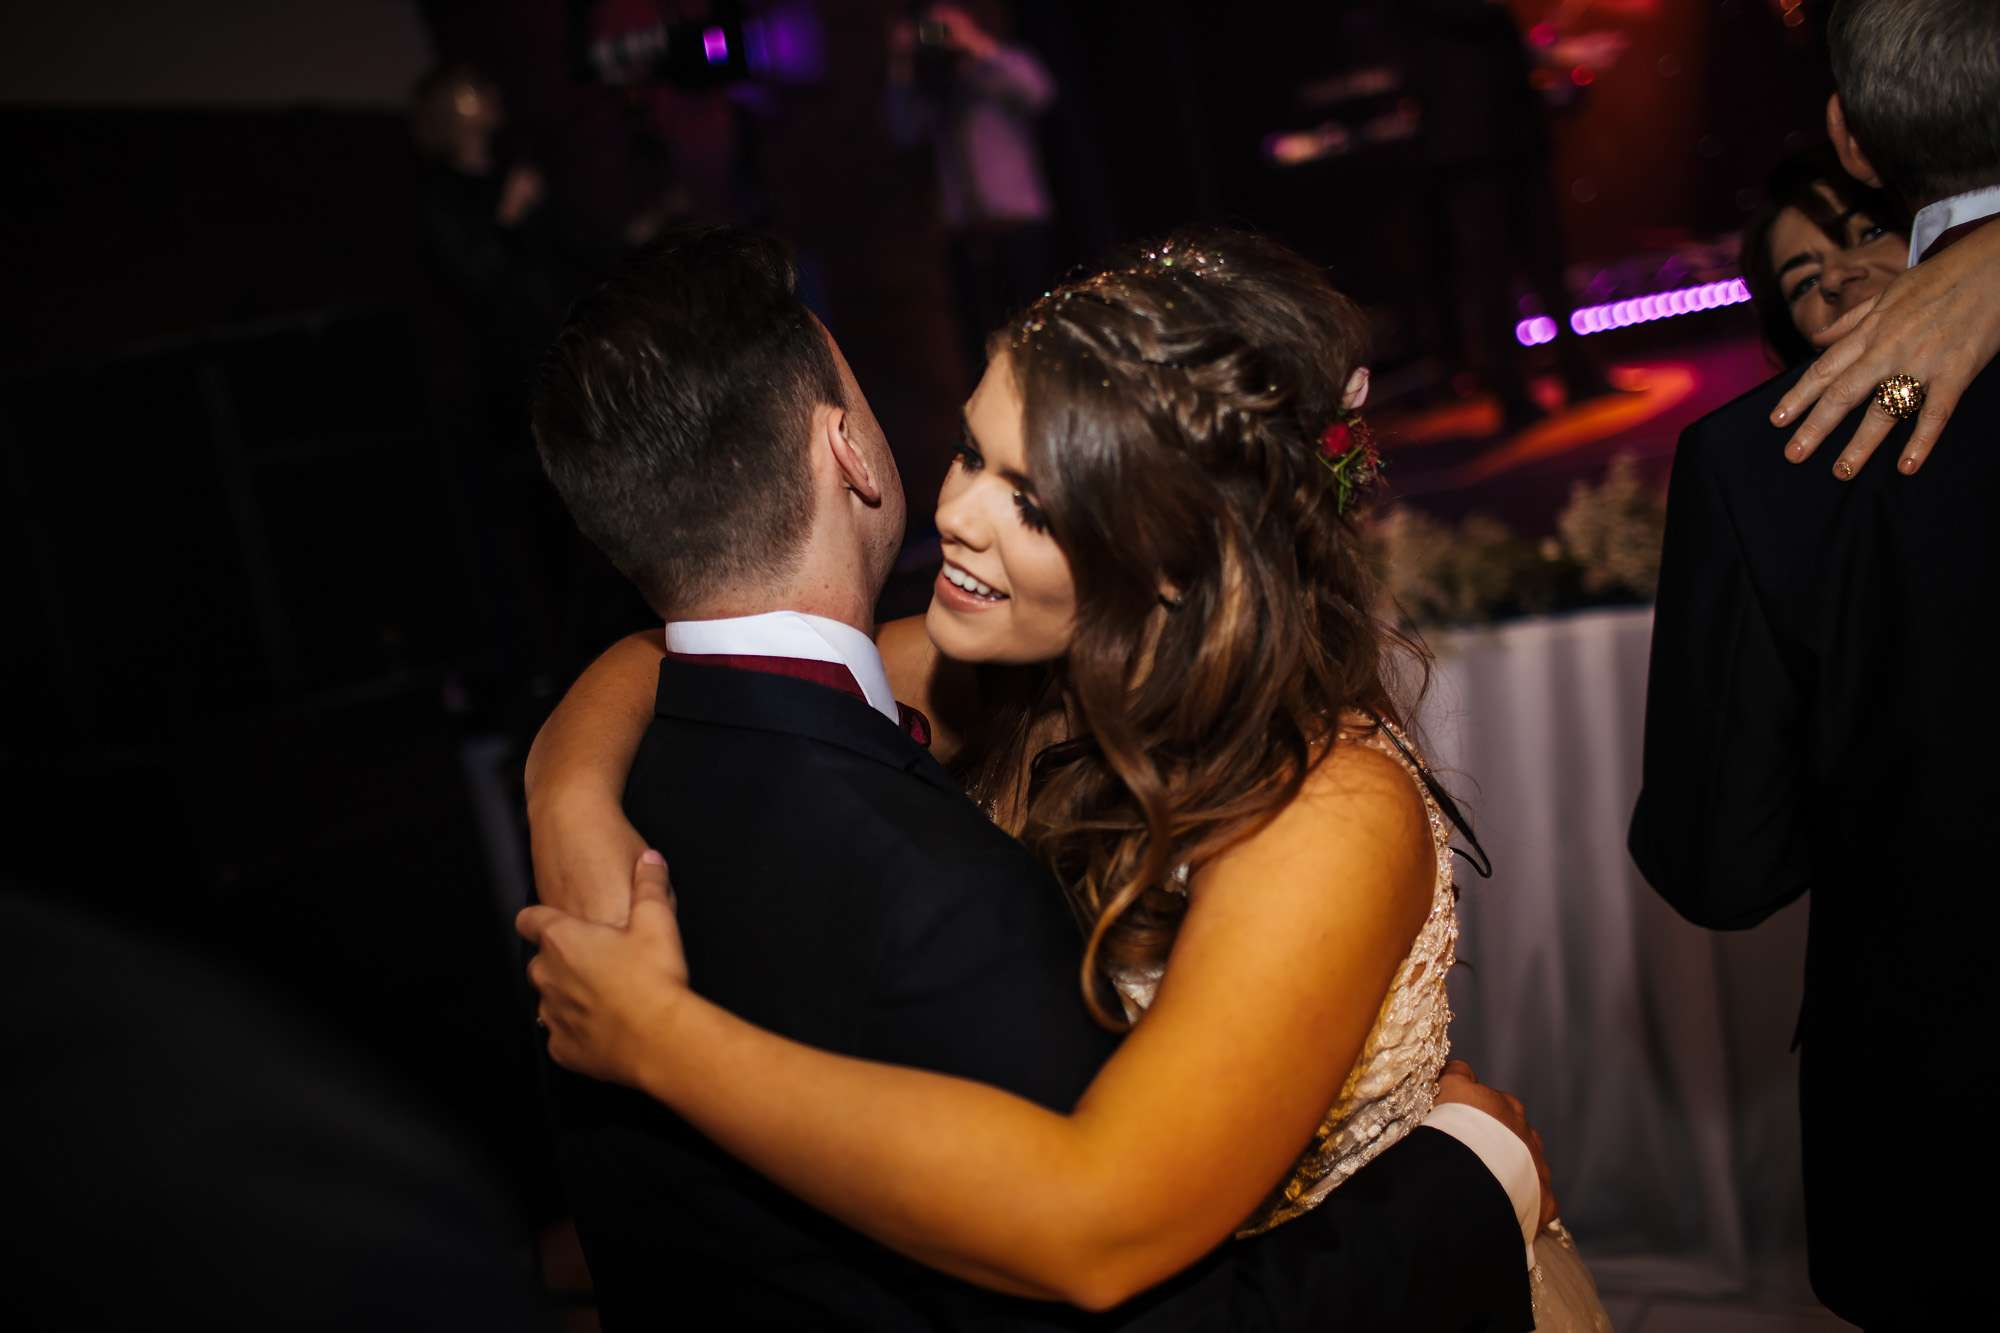 First dance as man and wife at a Blackpool wedding